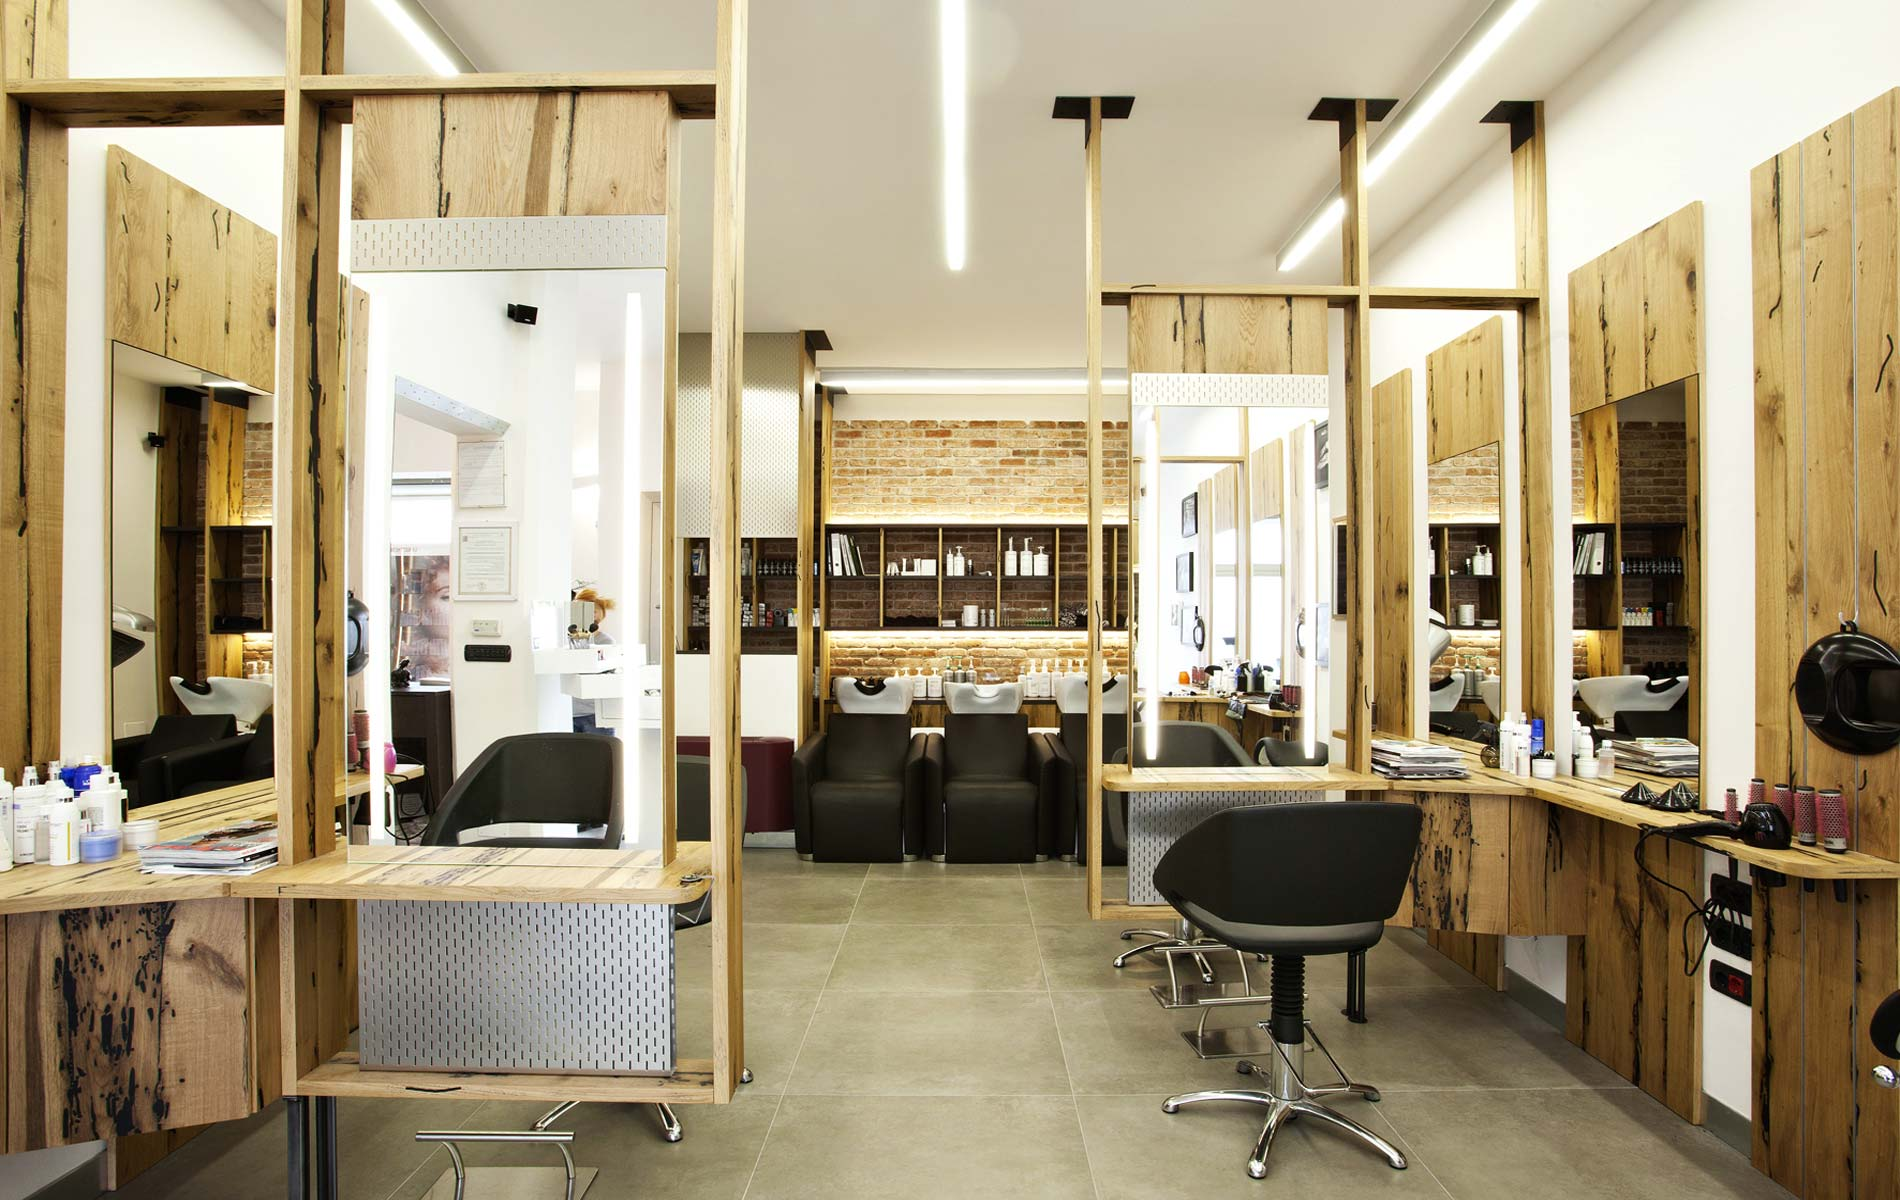 J hair and beauty hair stylist salon interior design by marco giovinazzo